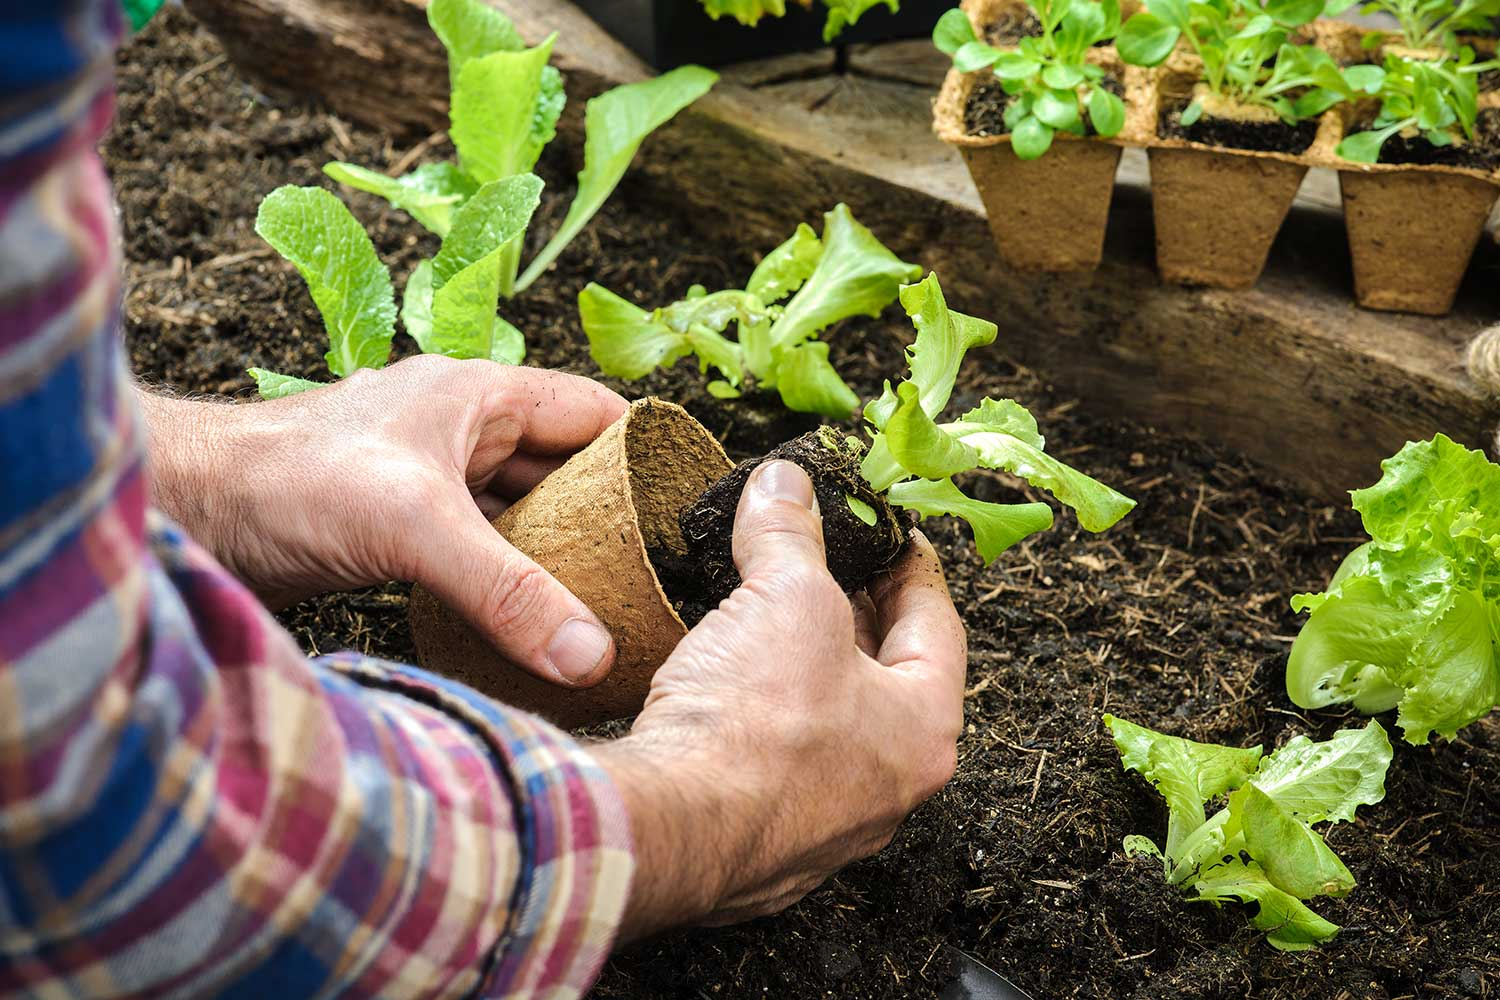 Two hands, one holds a small lettuce plant and the other holds a small pot near soil